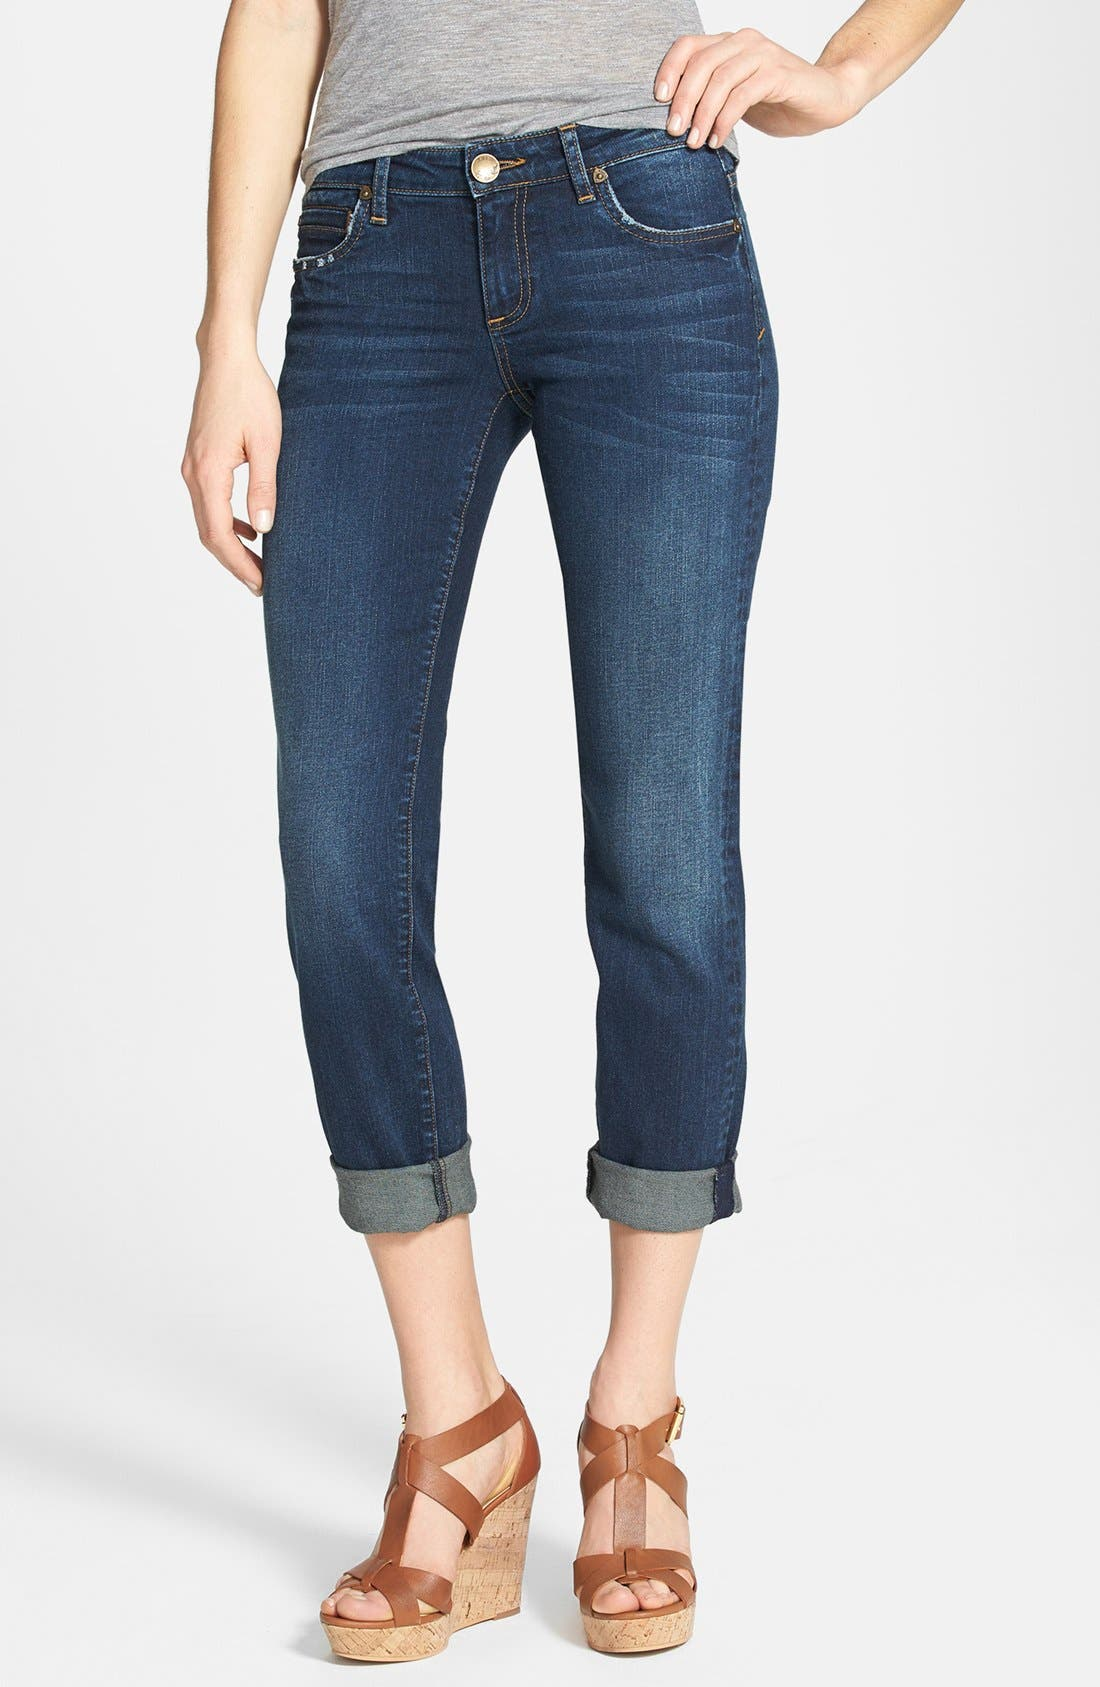 Alternate Image 1 Selected - KUT from the Kloth 'Catherine' Boyfriend Jeans (Magnify) (Regular & Petite)